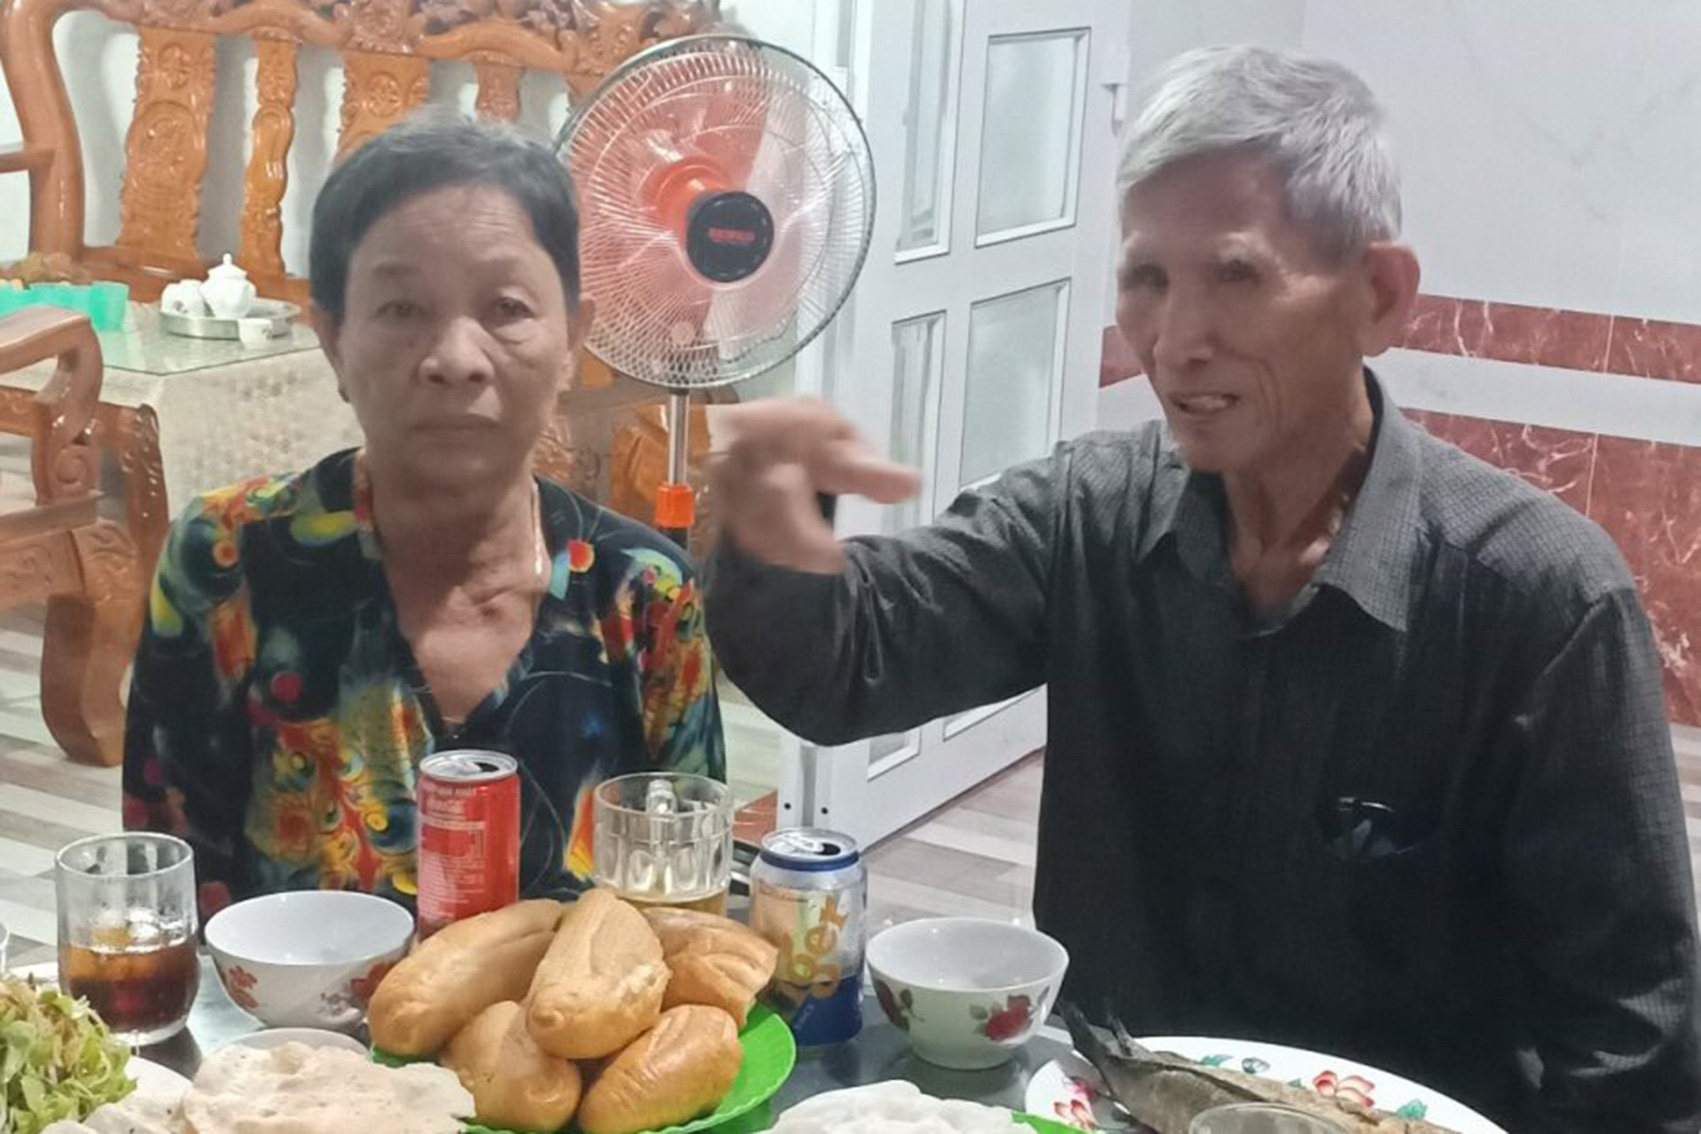 Pham Thi Sau (left) and her brother Pham Sung sit in a meal after being separated for 50 years in this photo supplied by the family.